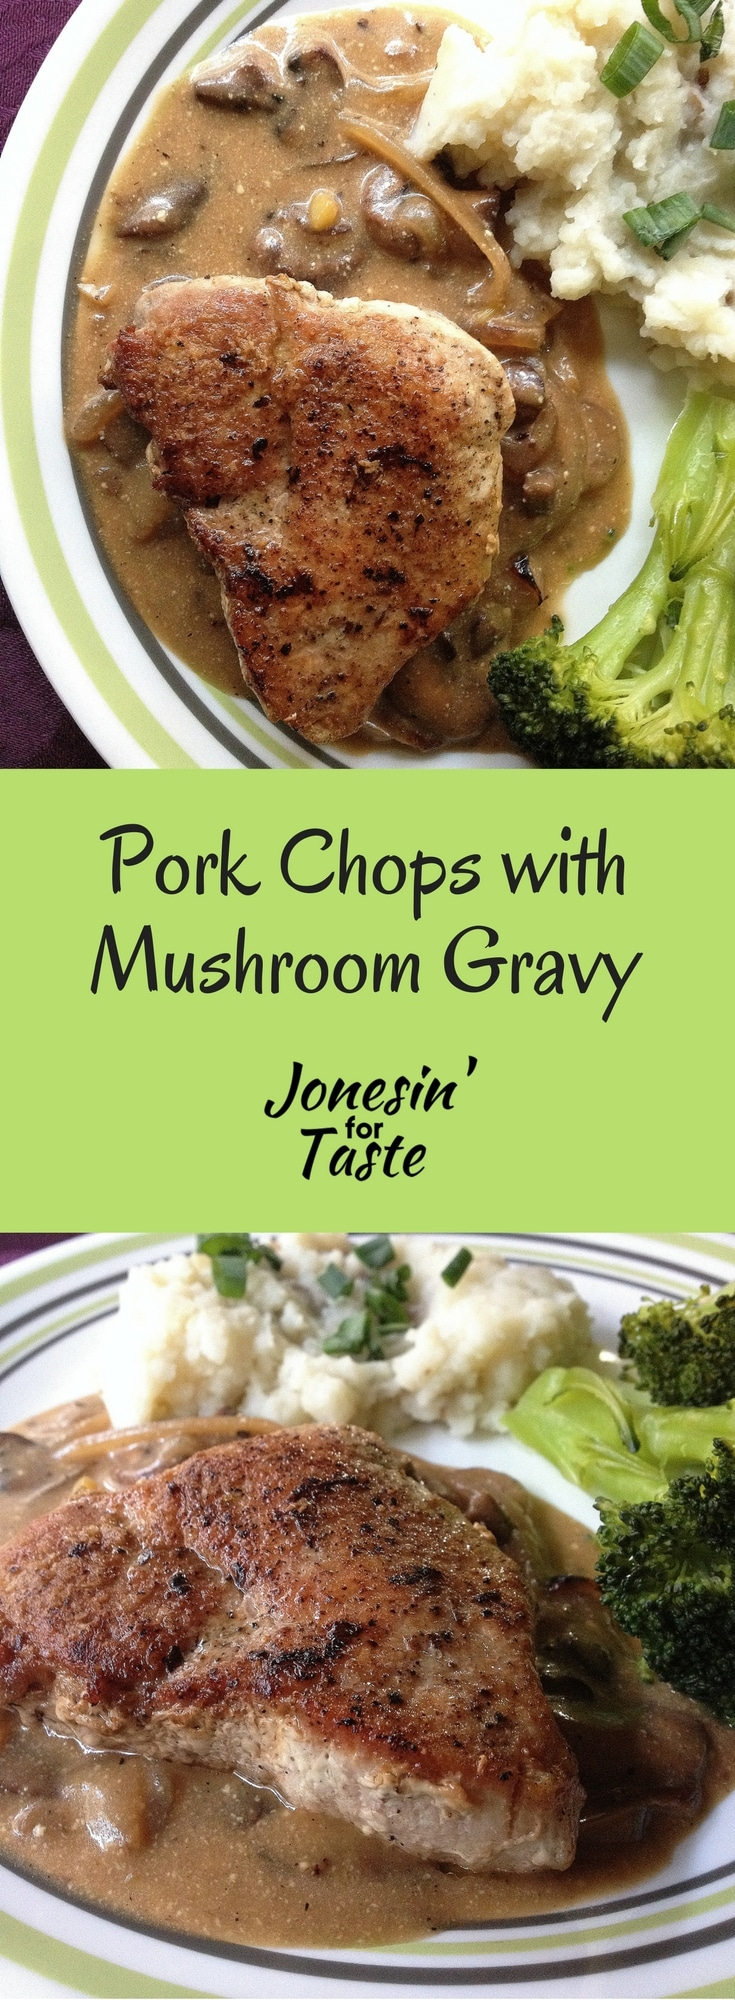 Pork chops with mushroom gravy is an easy comfort food recipe with an easy homemade gravy made with a surprise ingredient, Greek yogurt. #maindish #porkchops #30minutemeal